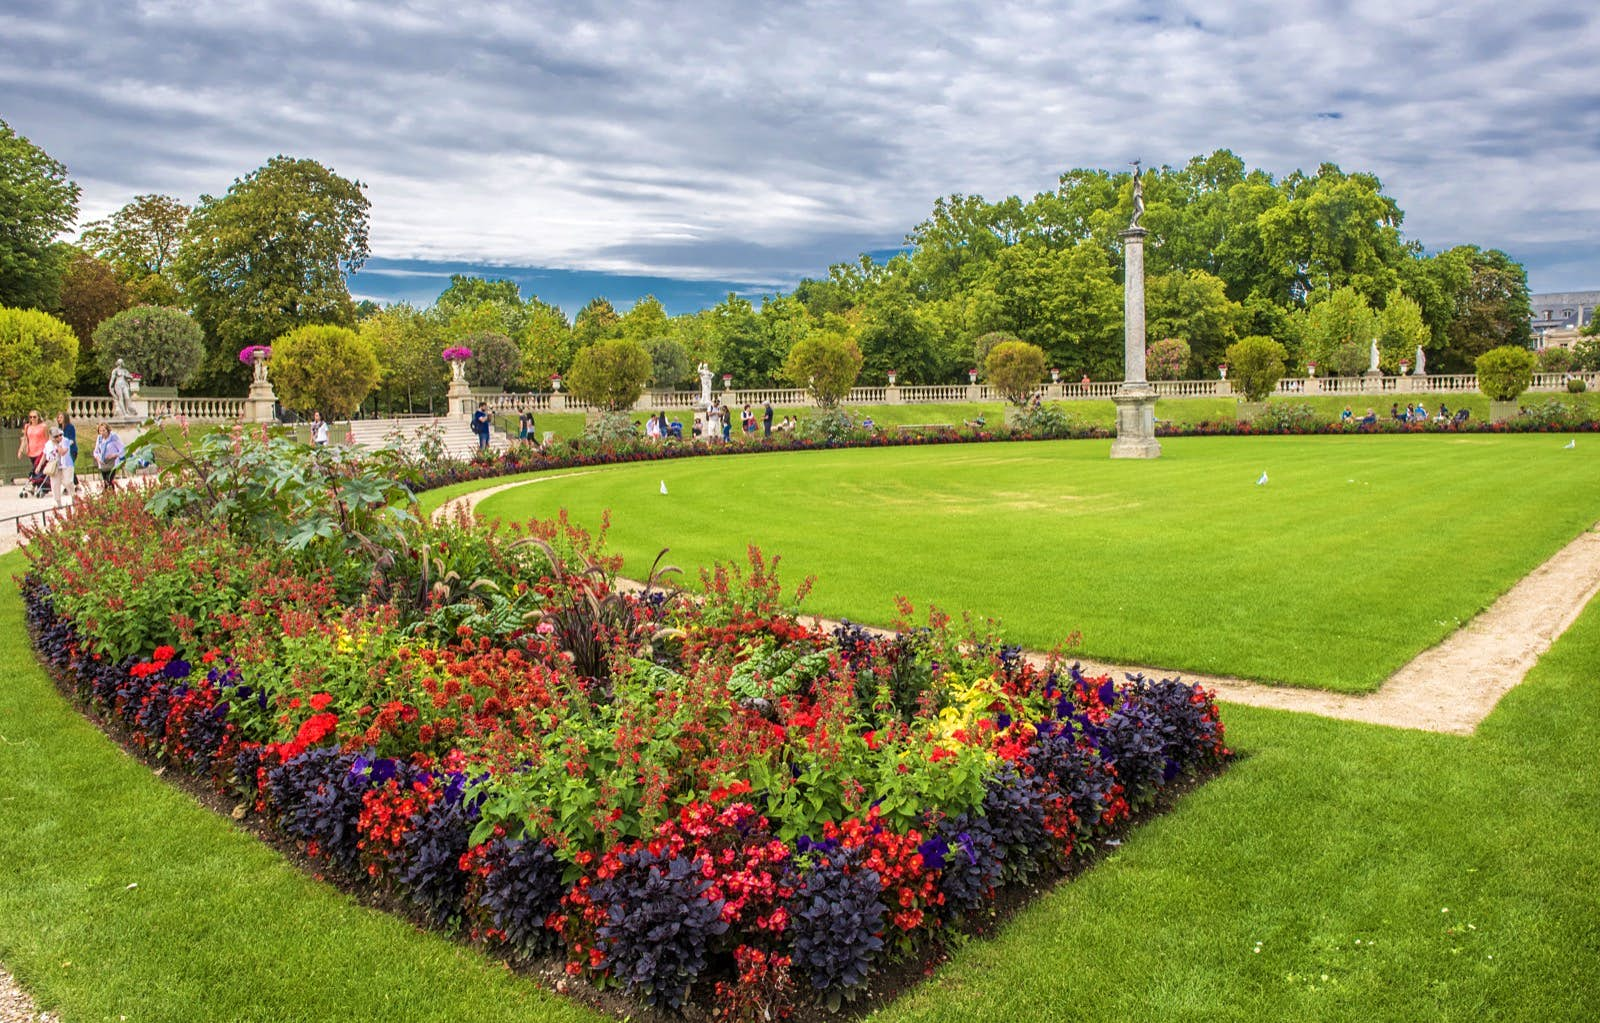 Bassin Fontaine De Jardin top 10 things to do in paris in spring - lonely planet